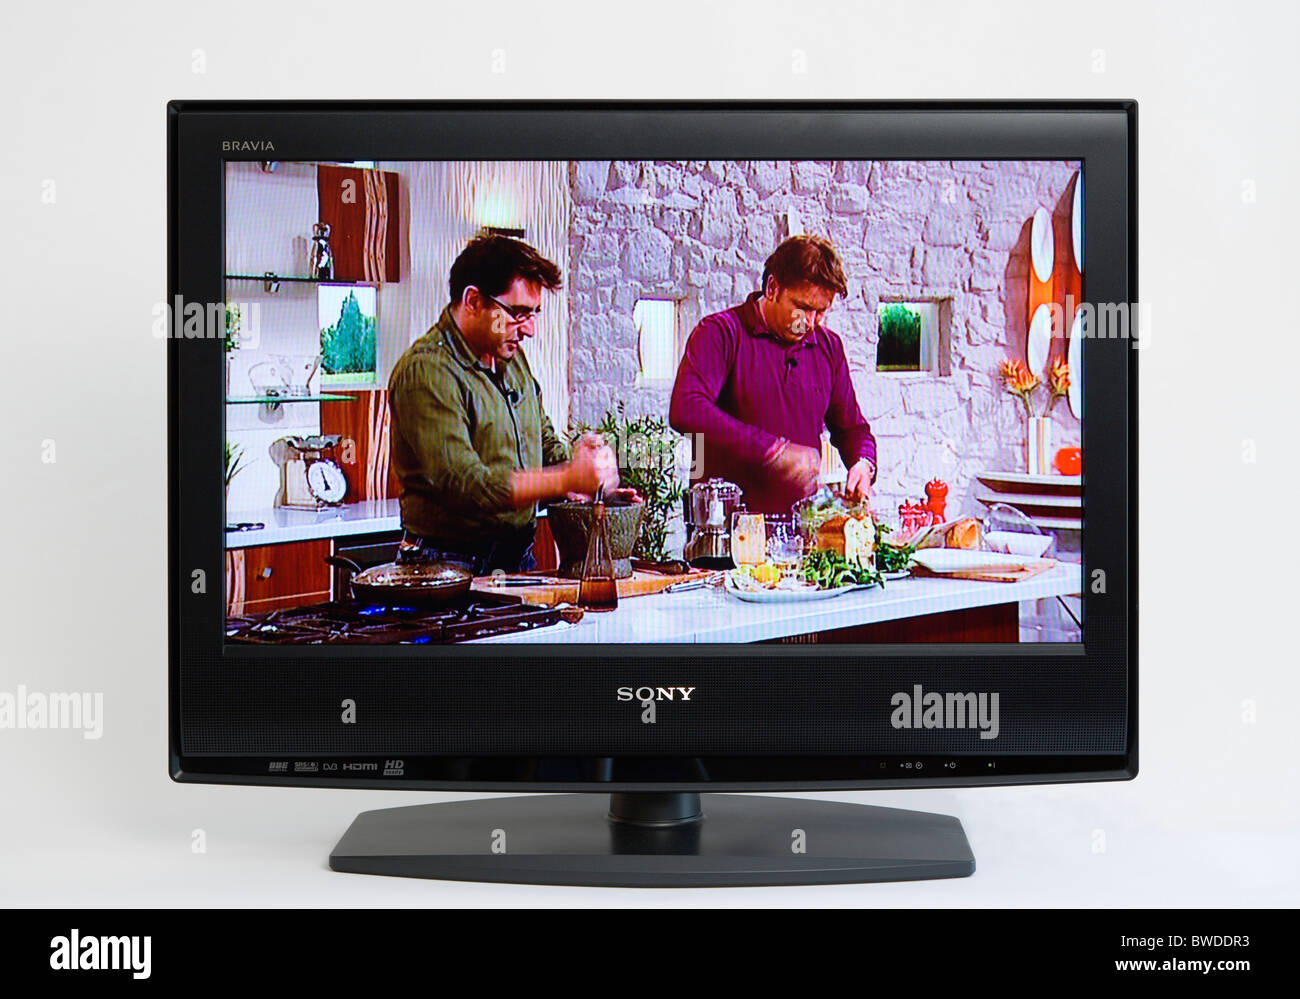 Communications, Media, Television, Sony Bravia Wide Flat Screen TV on a white background showing a cookery programme - Stock Image